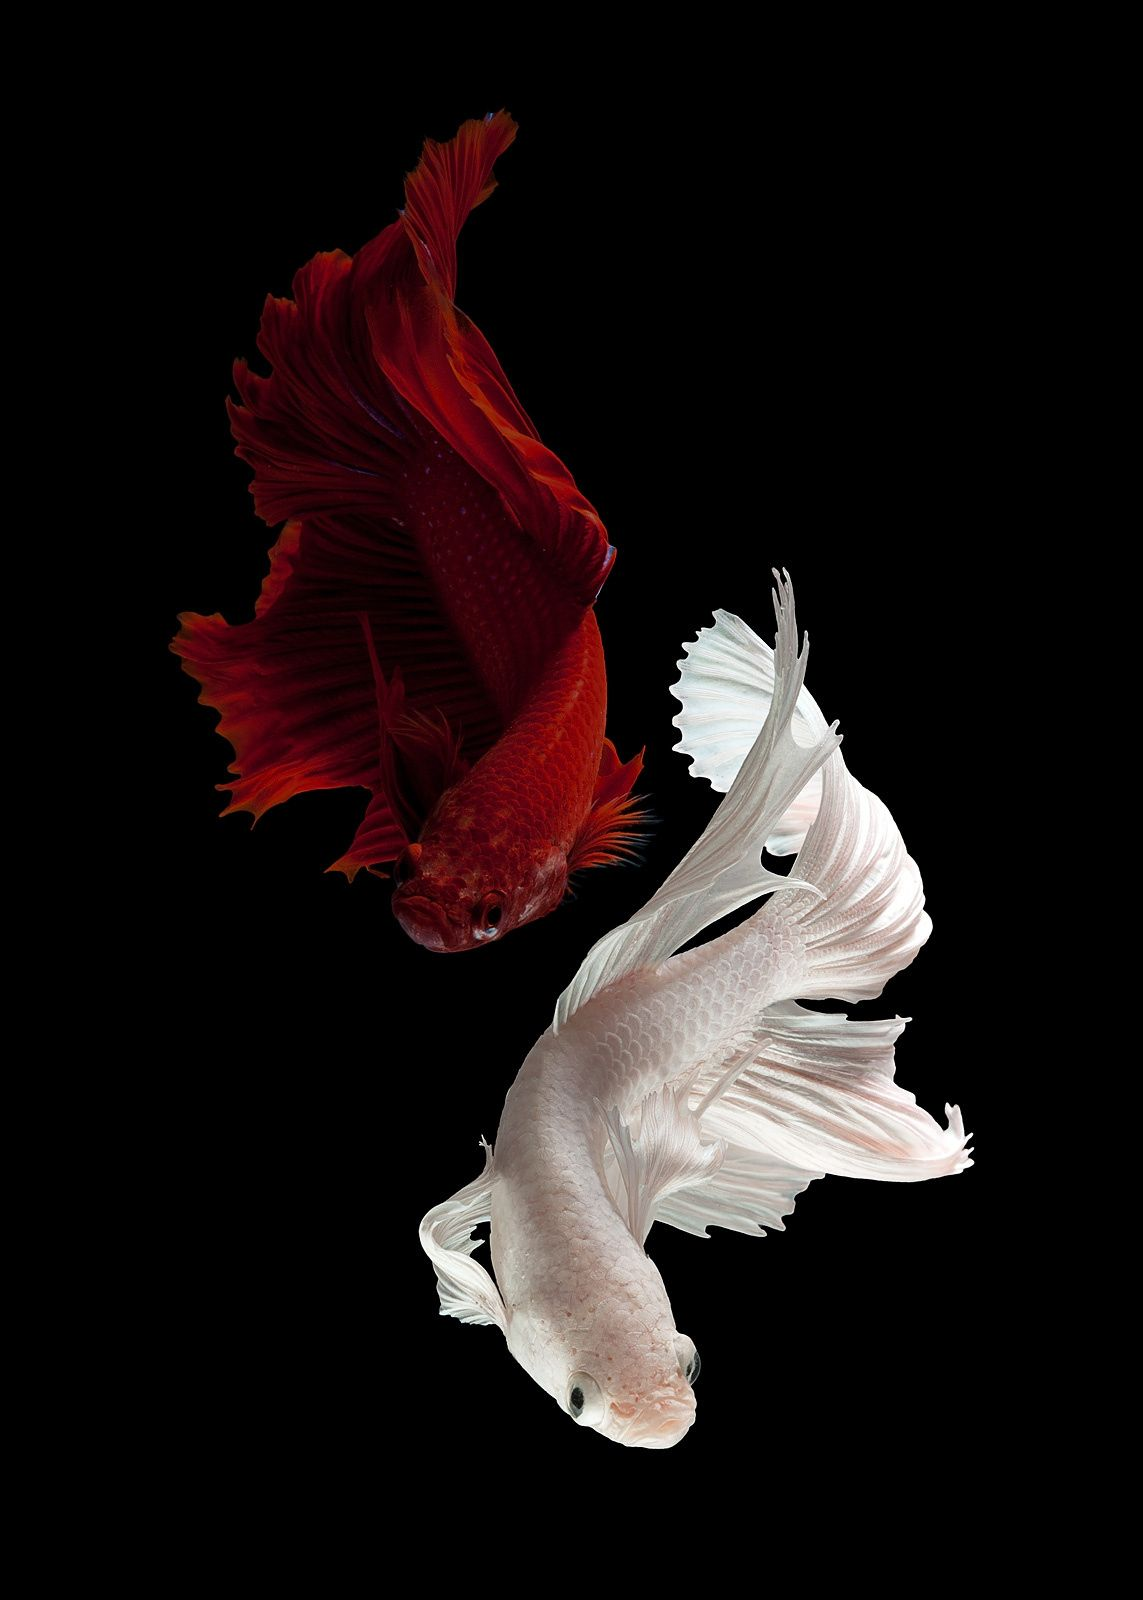 Wallpaper iphone cupang - Betta Fish Tank Beta Fish Pretty Fish Beautiful Fish Dolly World Siamese Fighting Fish Have A Day Lovers Photos Just Amazing